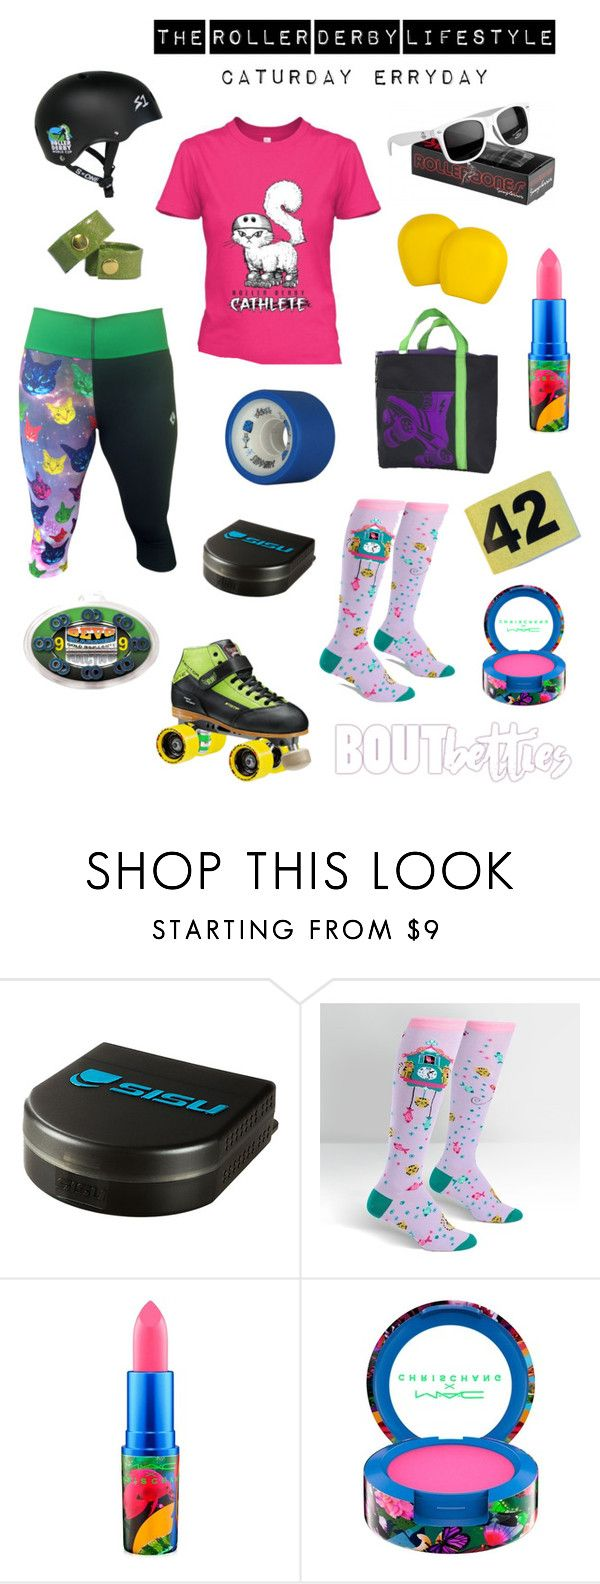 """#RollerCon2016 exclusive! Featured vendors straight from the Vendor Village. The roller derby lifestyle:""""Caturday Erryday"""". Inspirational mood board design by Bout Betties on Polyvore.  #friyayfashion featuring Left Turn Clothing, Roller Bones, Pivot Star, Sock It To Me, Roller Derby Elite, S1 Helmet Co, Juice Wheels, 187 Killer Pads, Wicked Skatewear, Dottie Brand Accessories, Derby Warehouse, Blood and Thunder, Skate Geek and Ronky Tonk Art"""